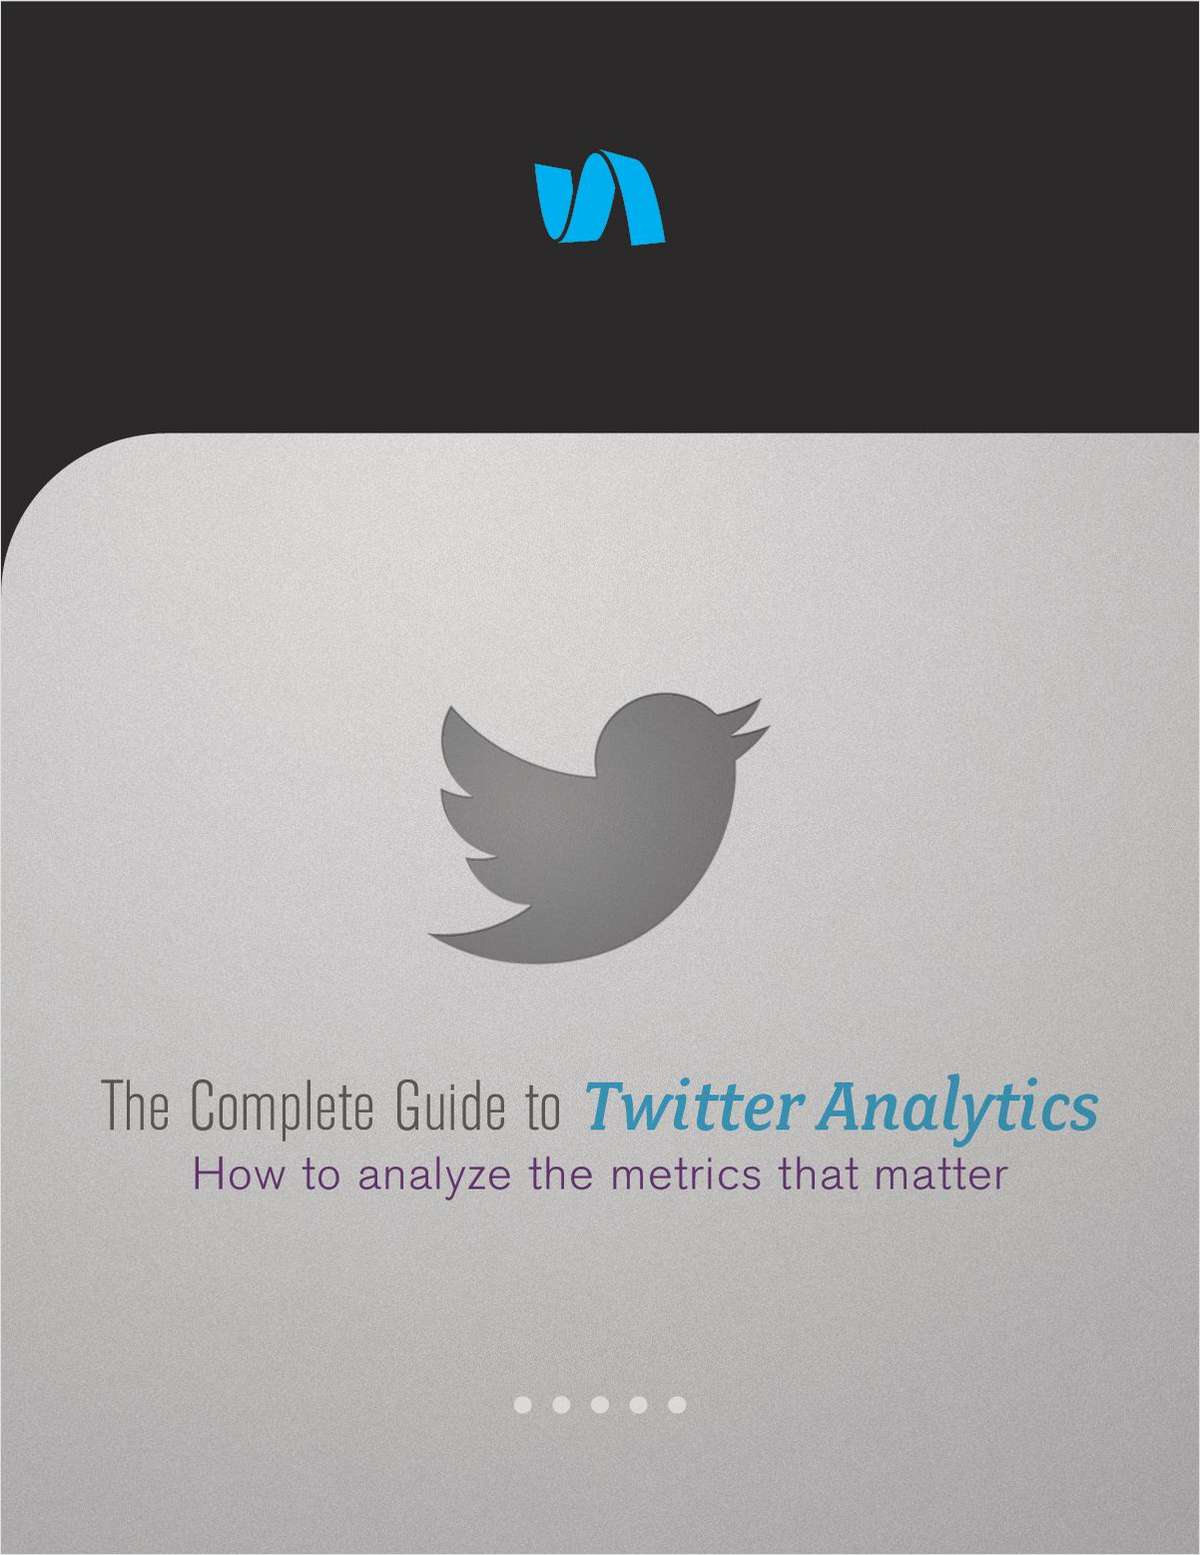 The Complete Guide to Twitter Analytics